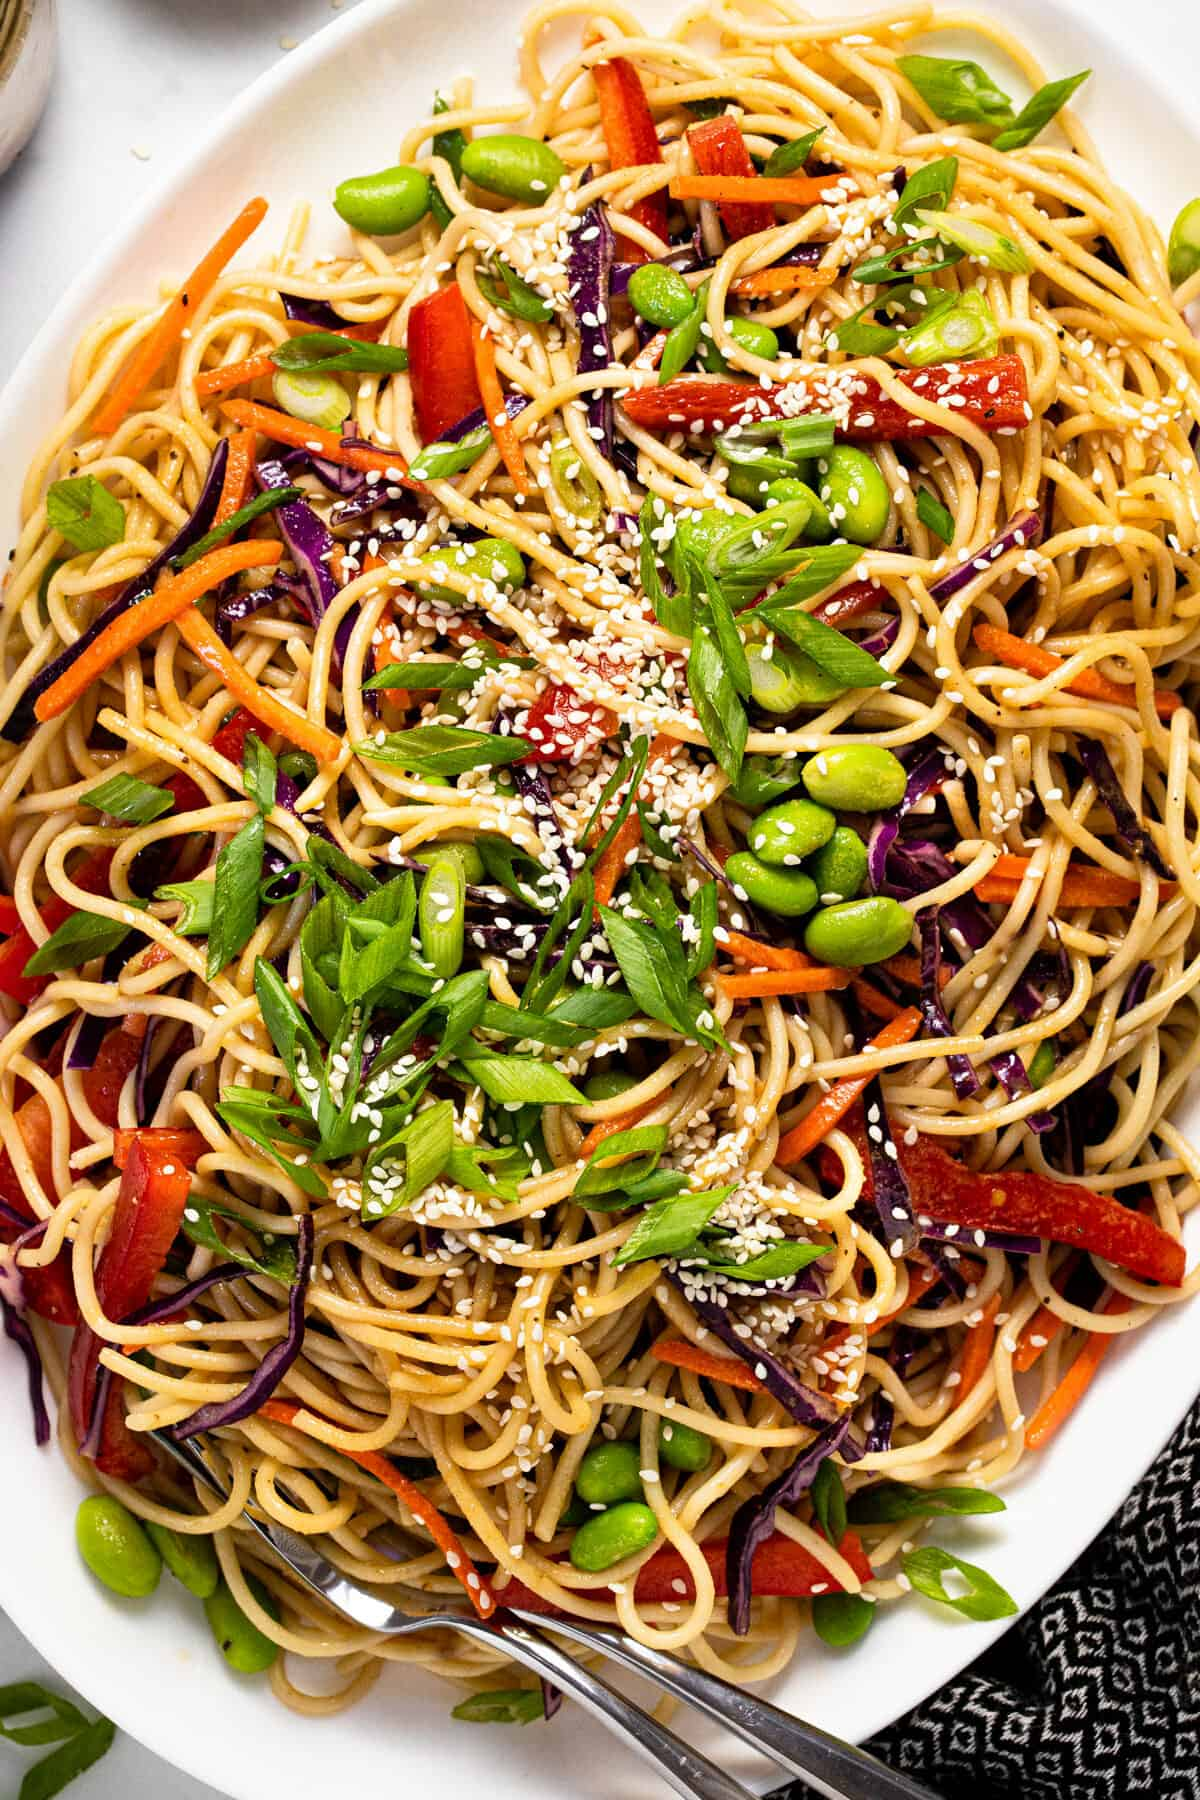 Large white serving platter filled with sesame noodle salad garnished with green onions